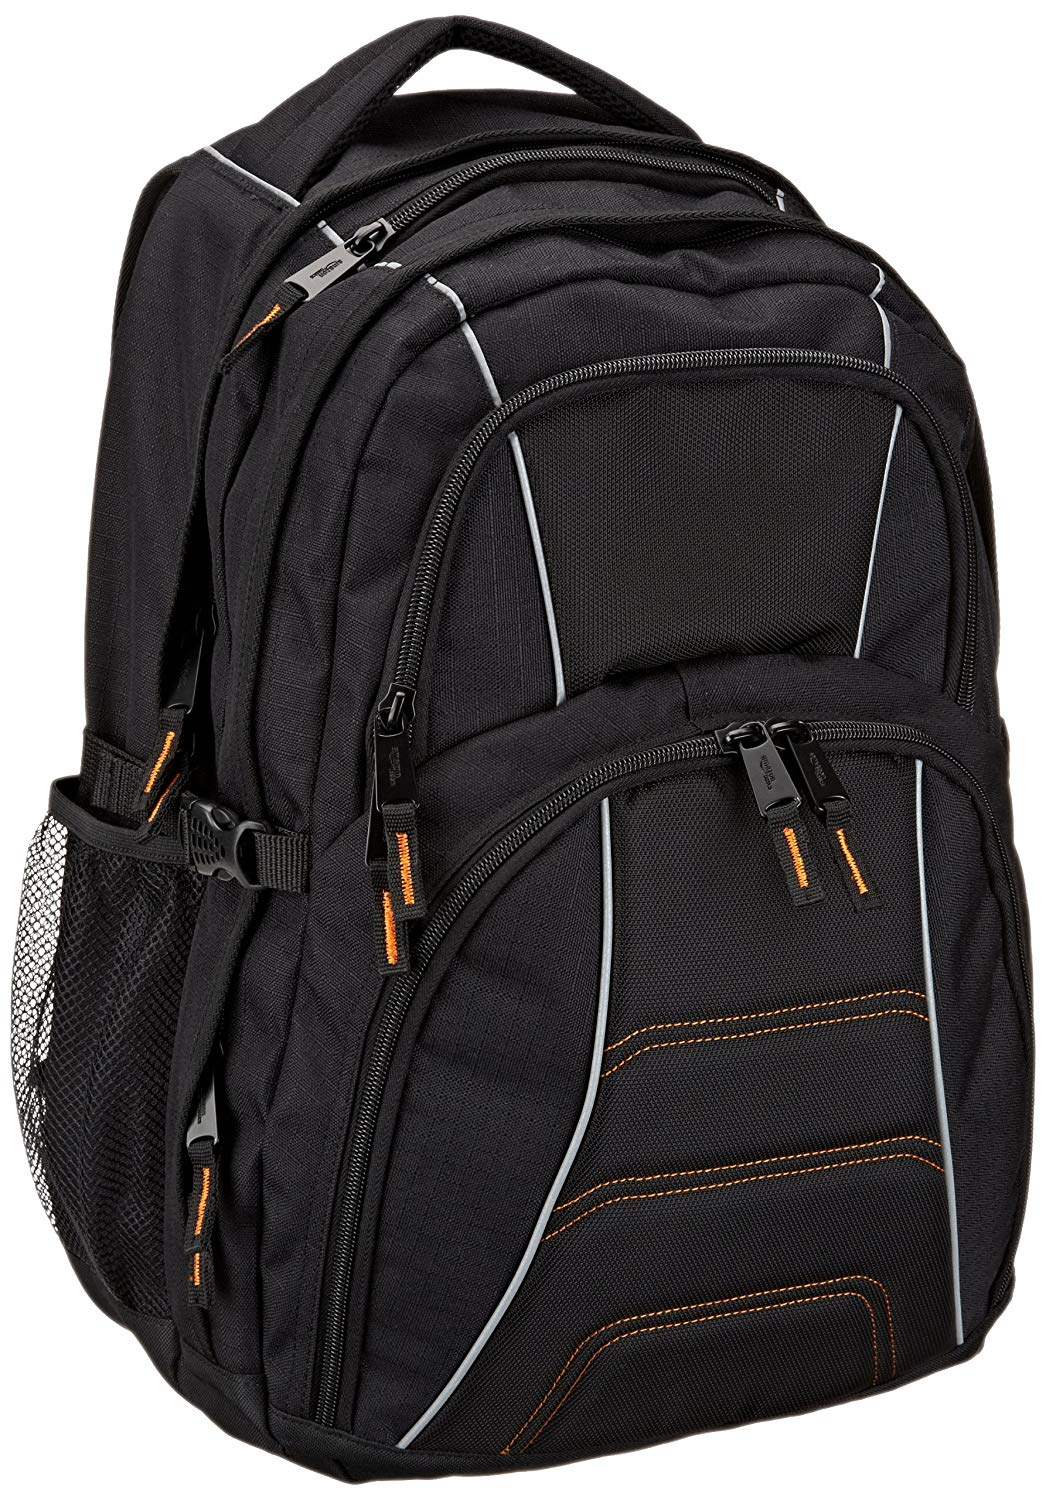 AmazonBasics  | Best Backpacks for College